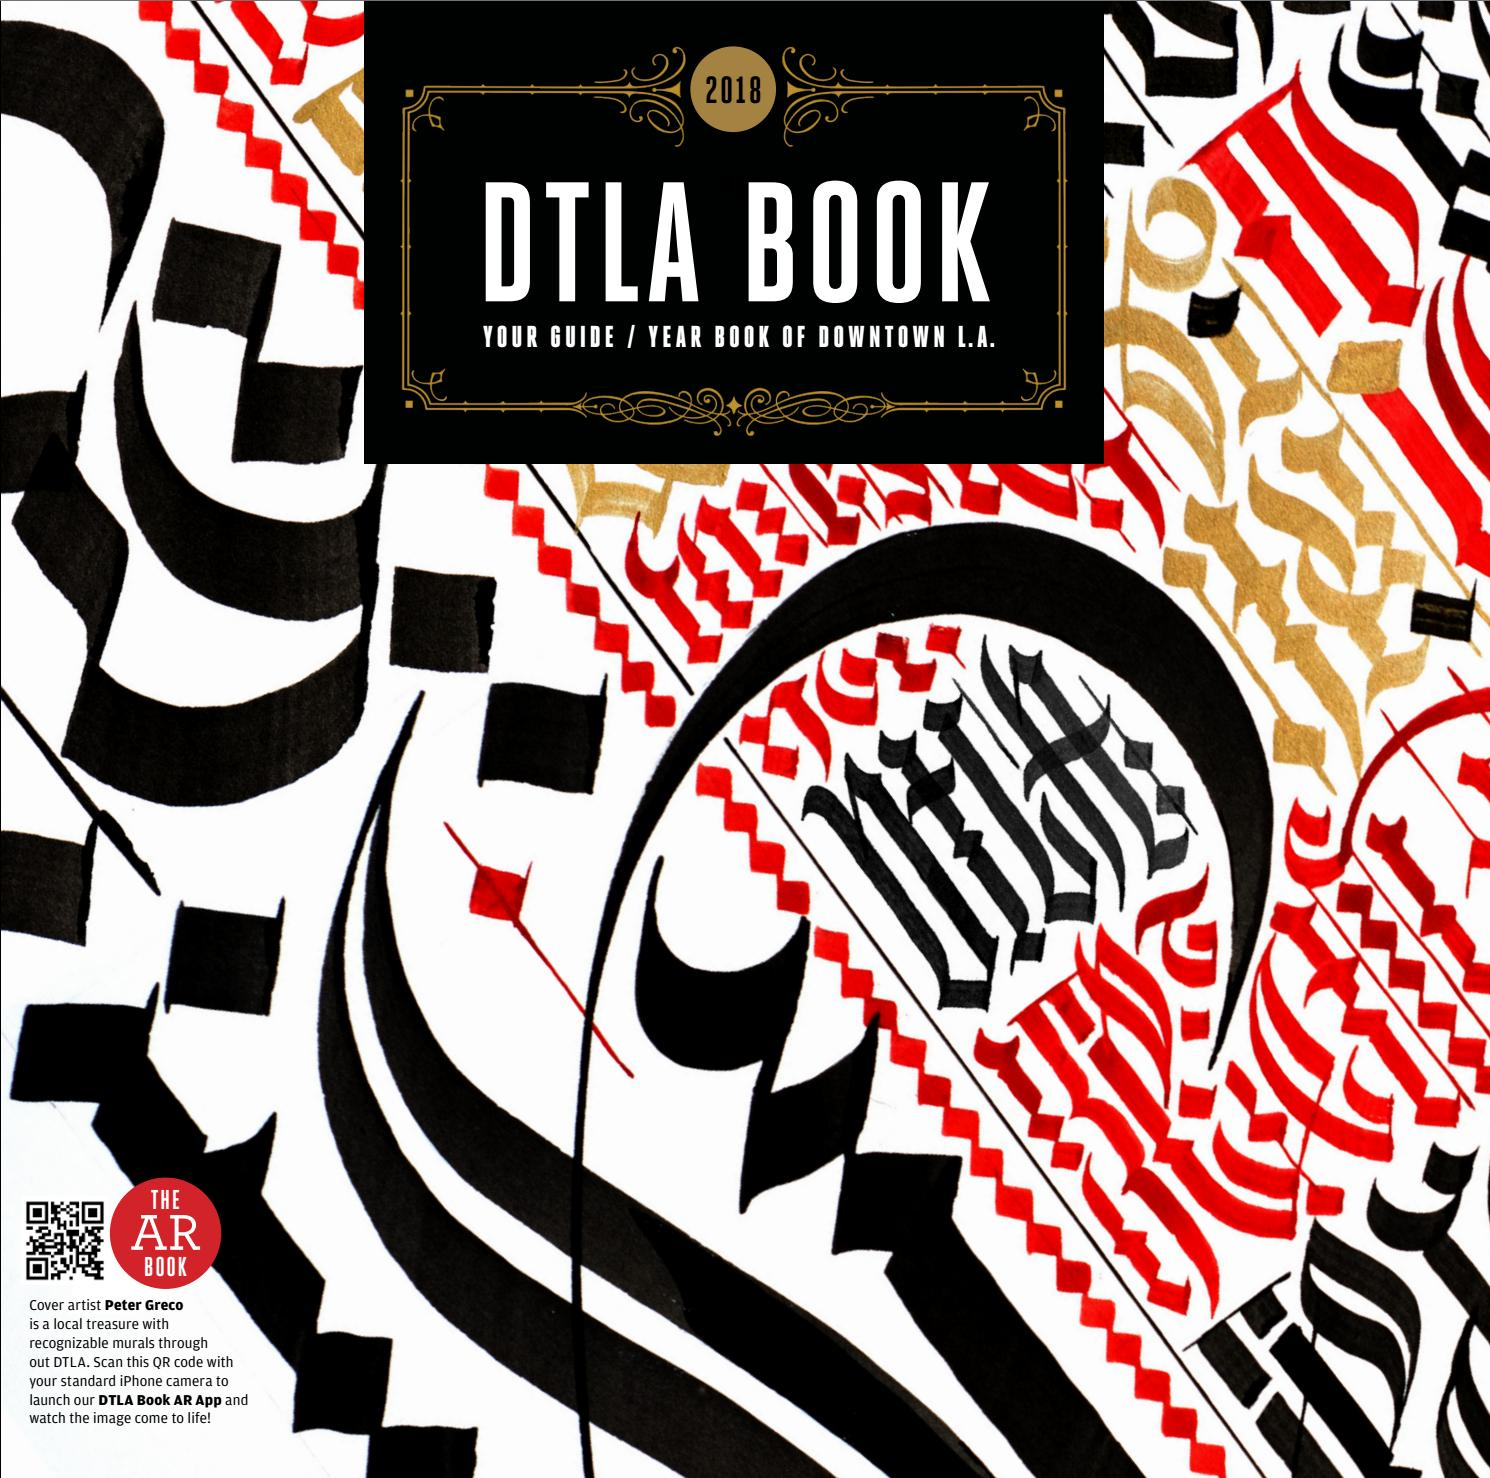 DTLA Book 2018 (Digital Version) by District 8 Media - issuu